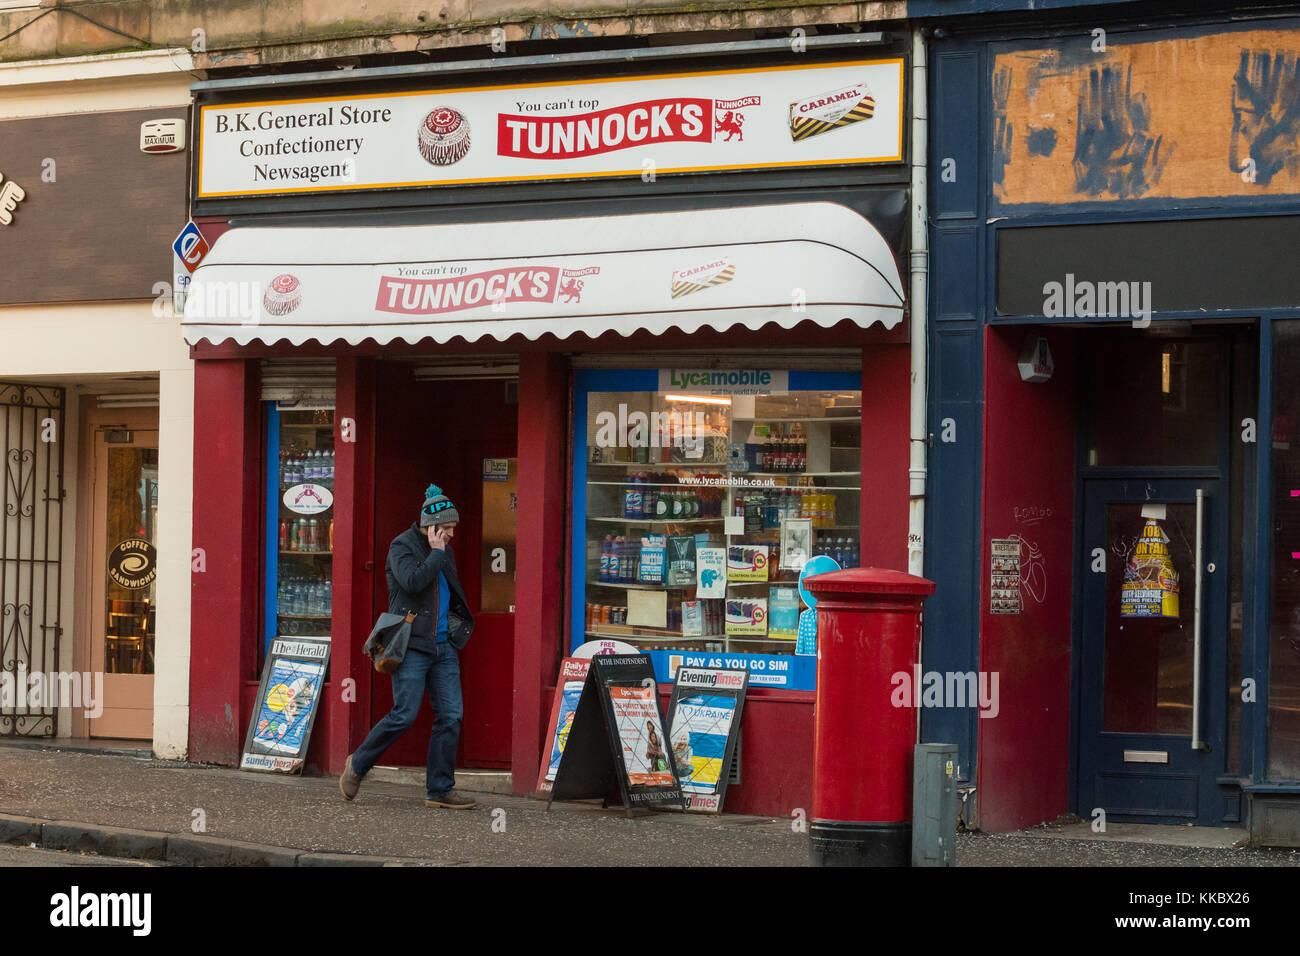 Corner Shop General Store Newsagents on Great Western Road, Glasgow, Scotland, UK - Stock Image